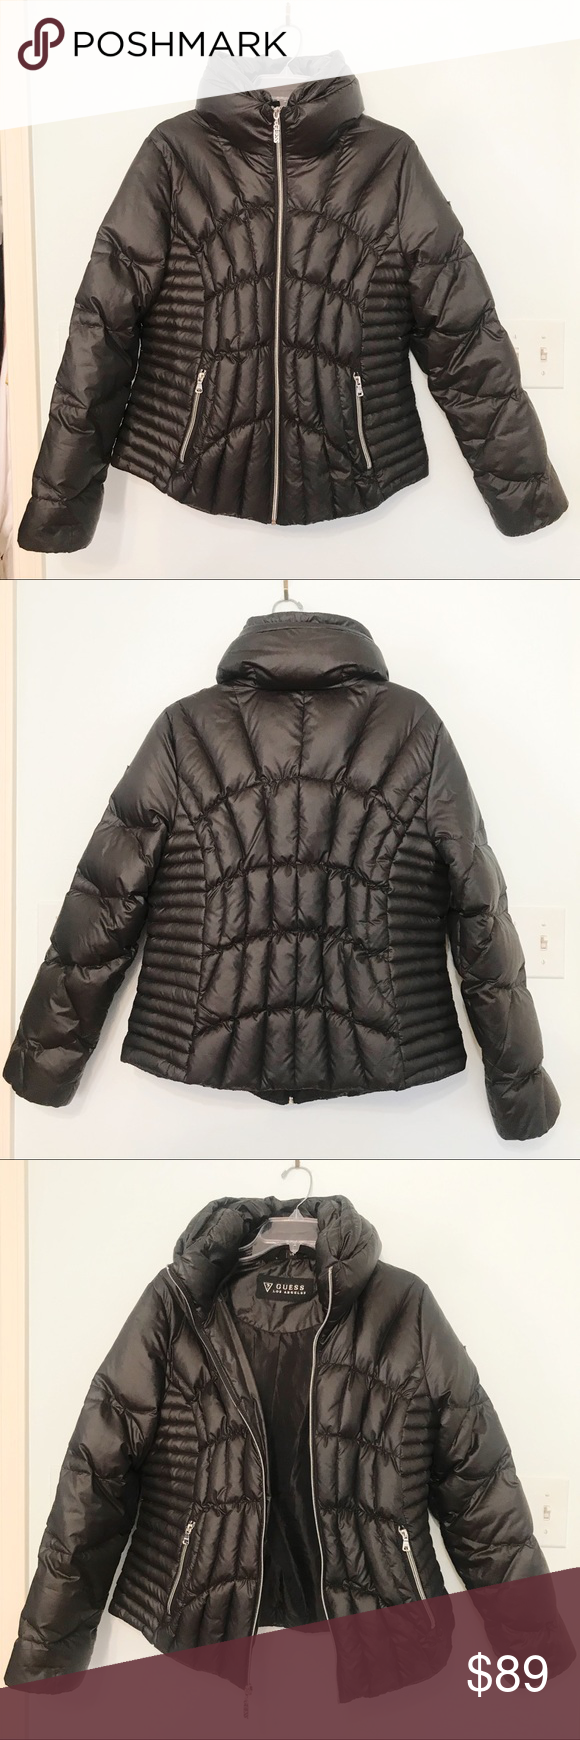 Guess Down Puffer Coat Jacket Black Large Clothes Design Down Puffer Coat Fashion [ 1740 x 580 Pixel ]